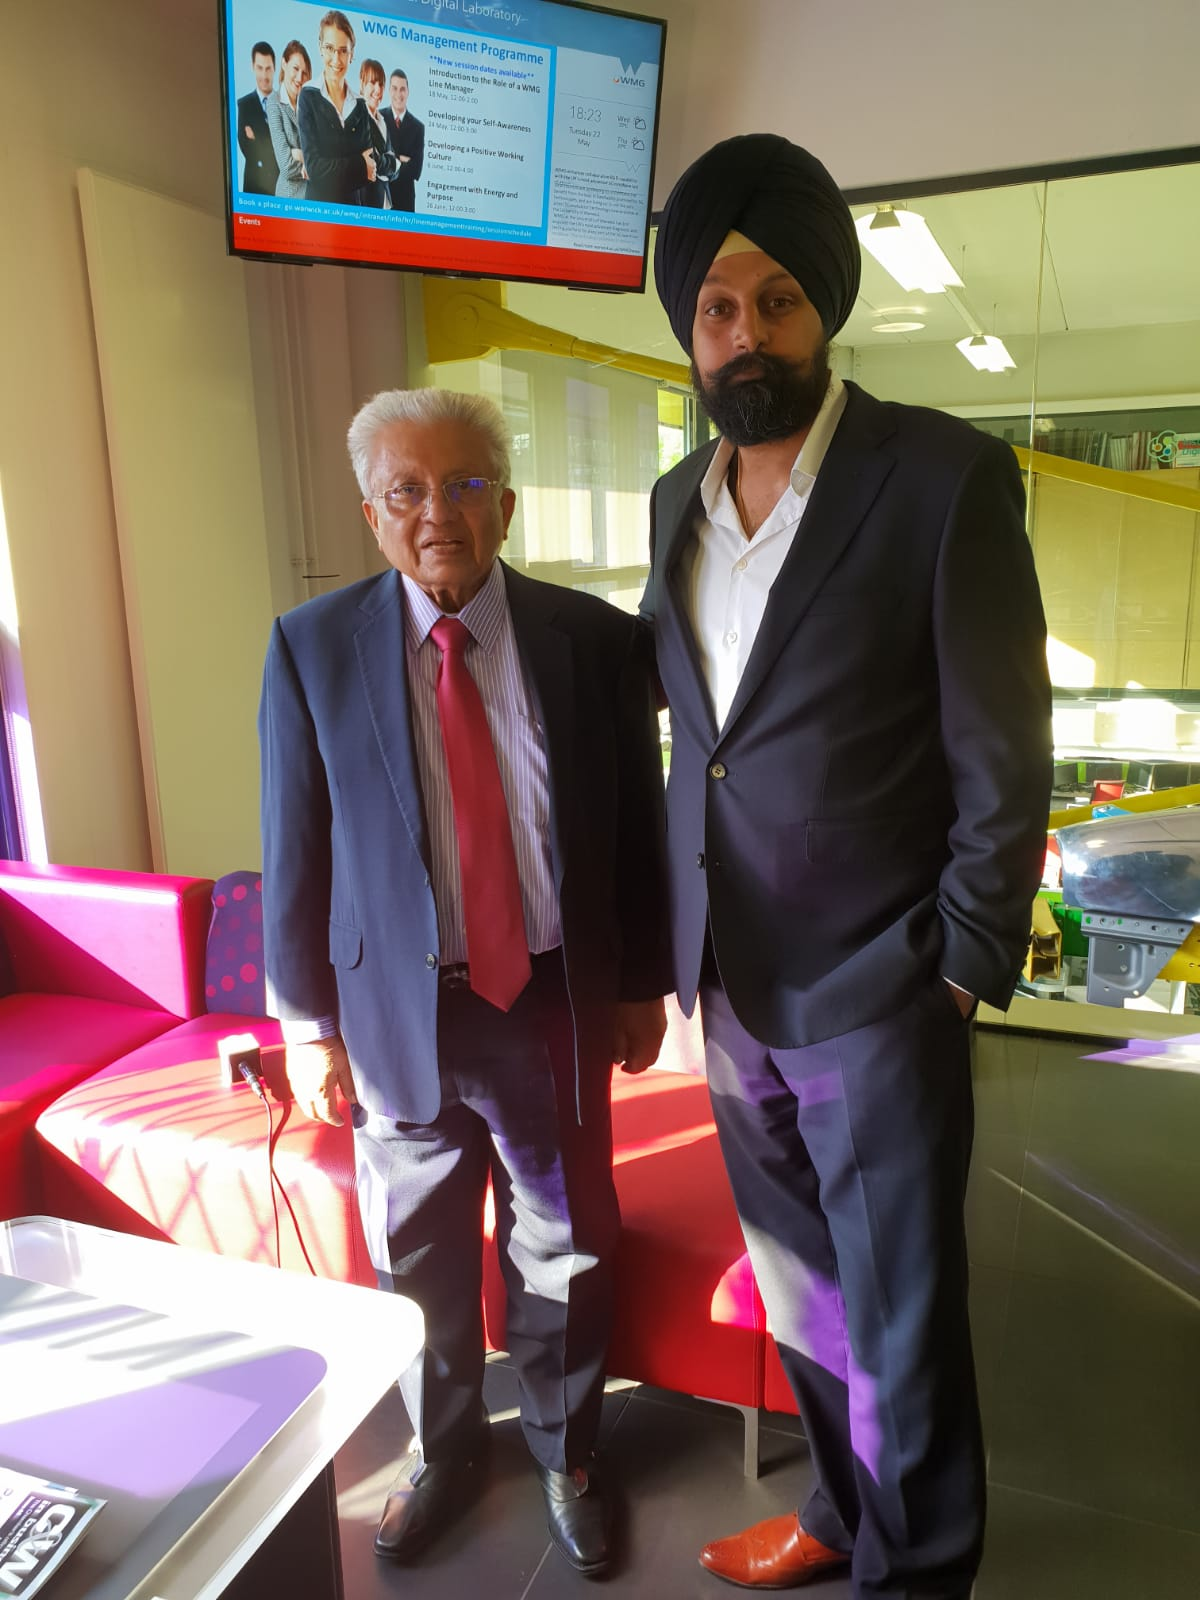 CEO of BritAsia TV, Tony Shergill, with Lord Bhattacharya